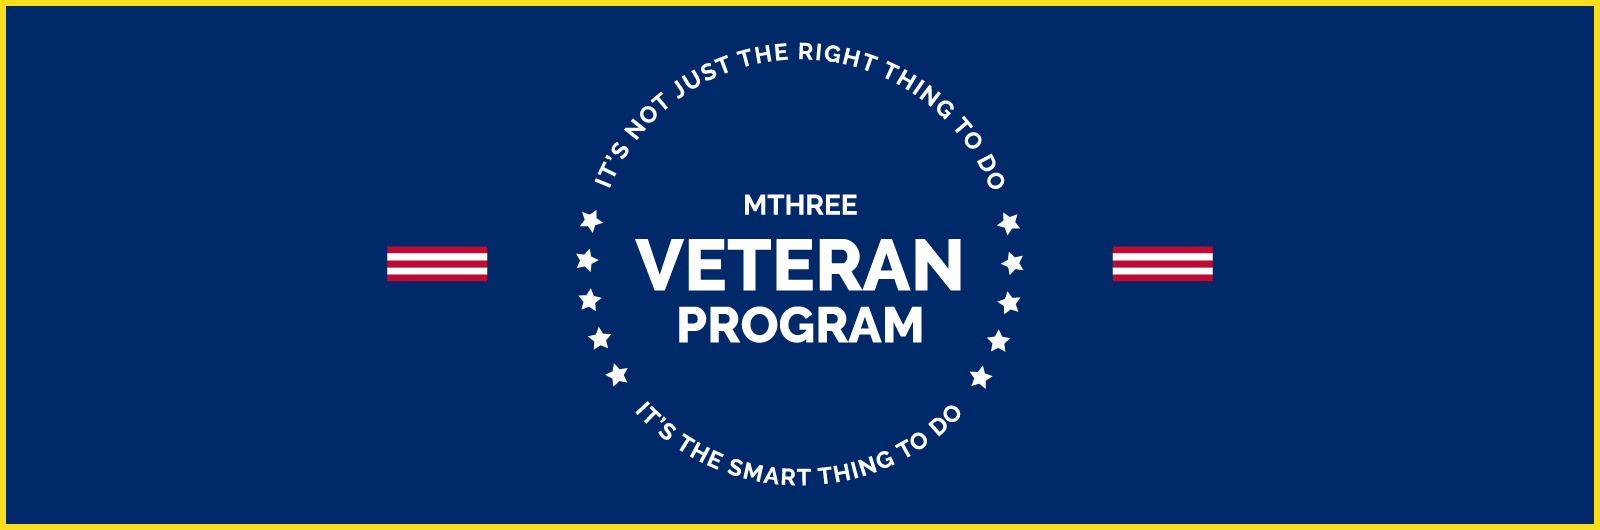 mthree-veteran-program